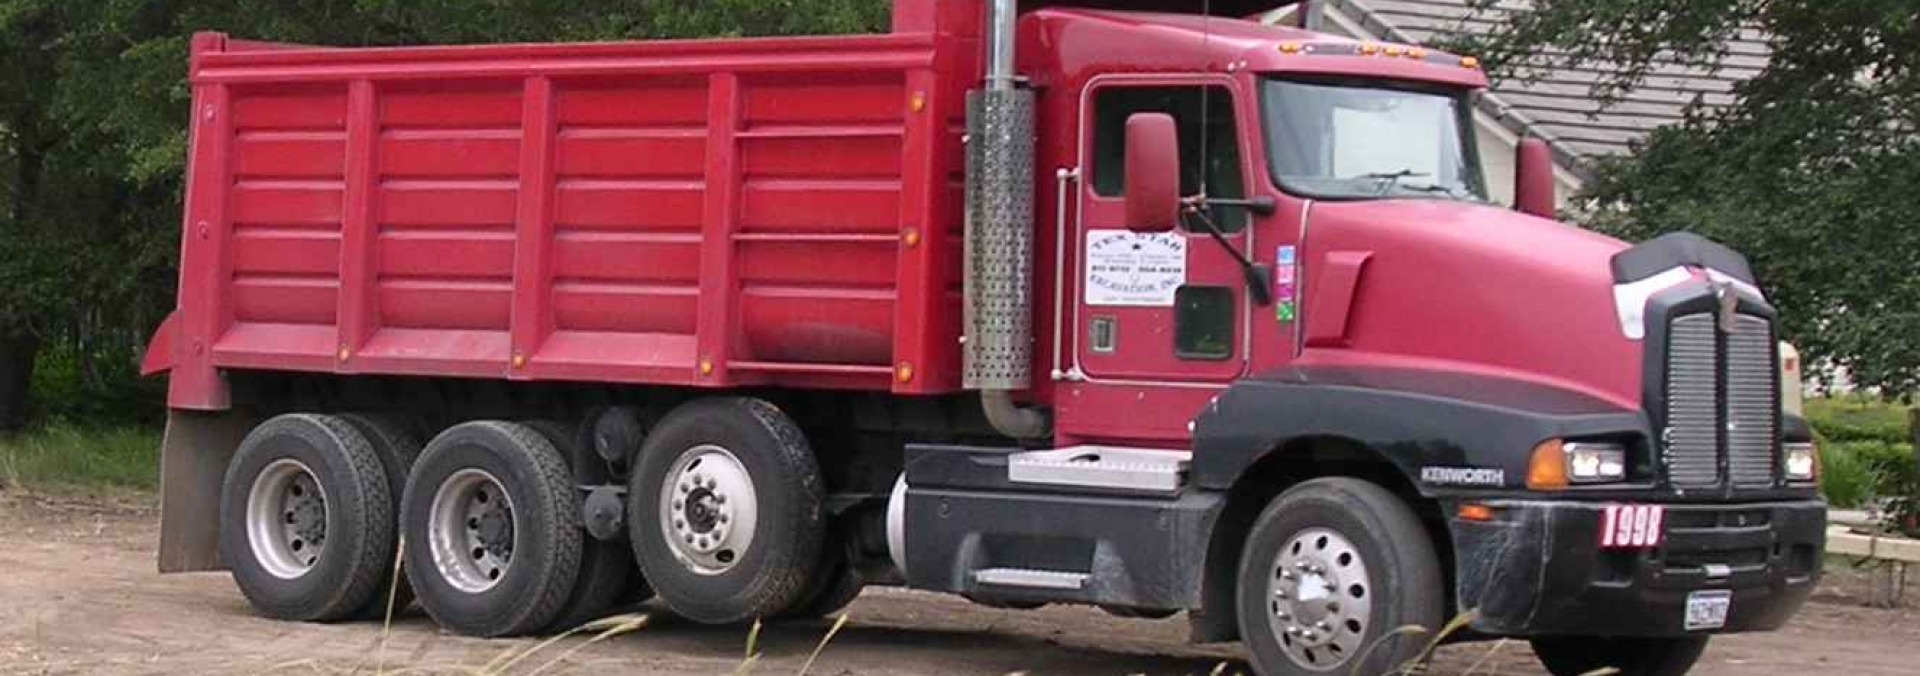 business auto insurance Cincinnati dump truck